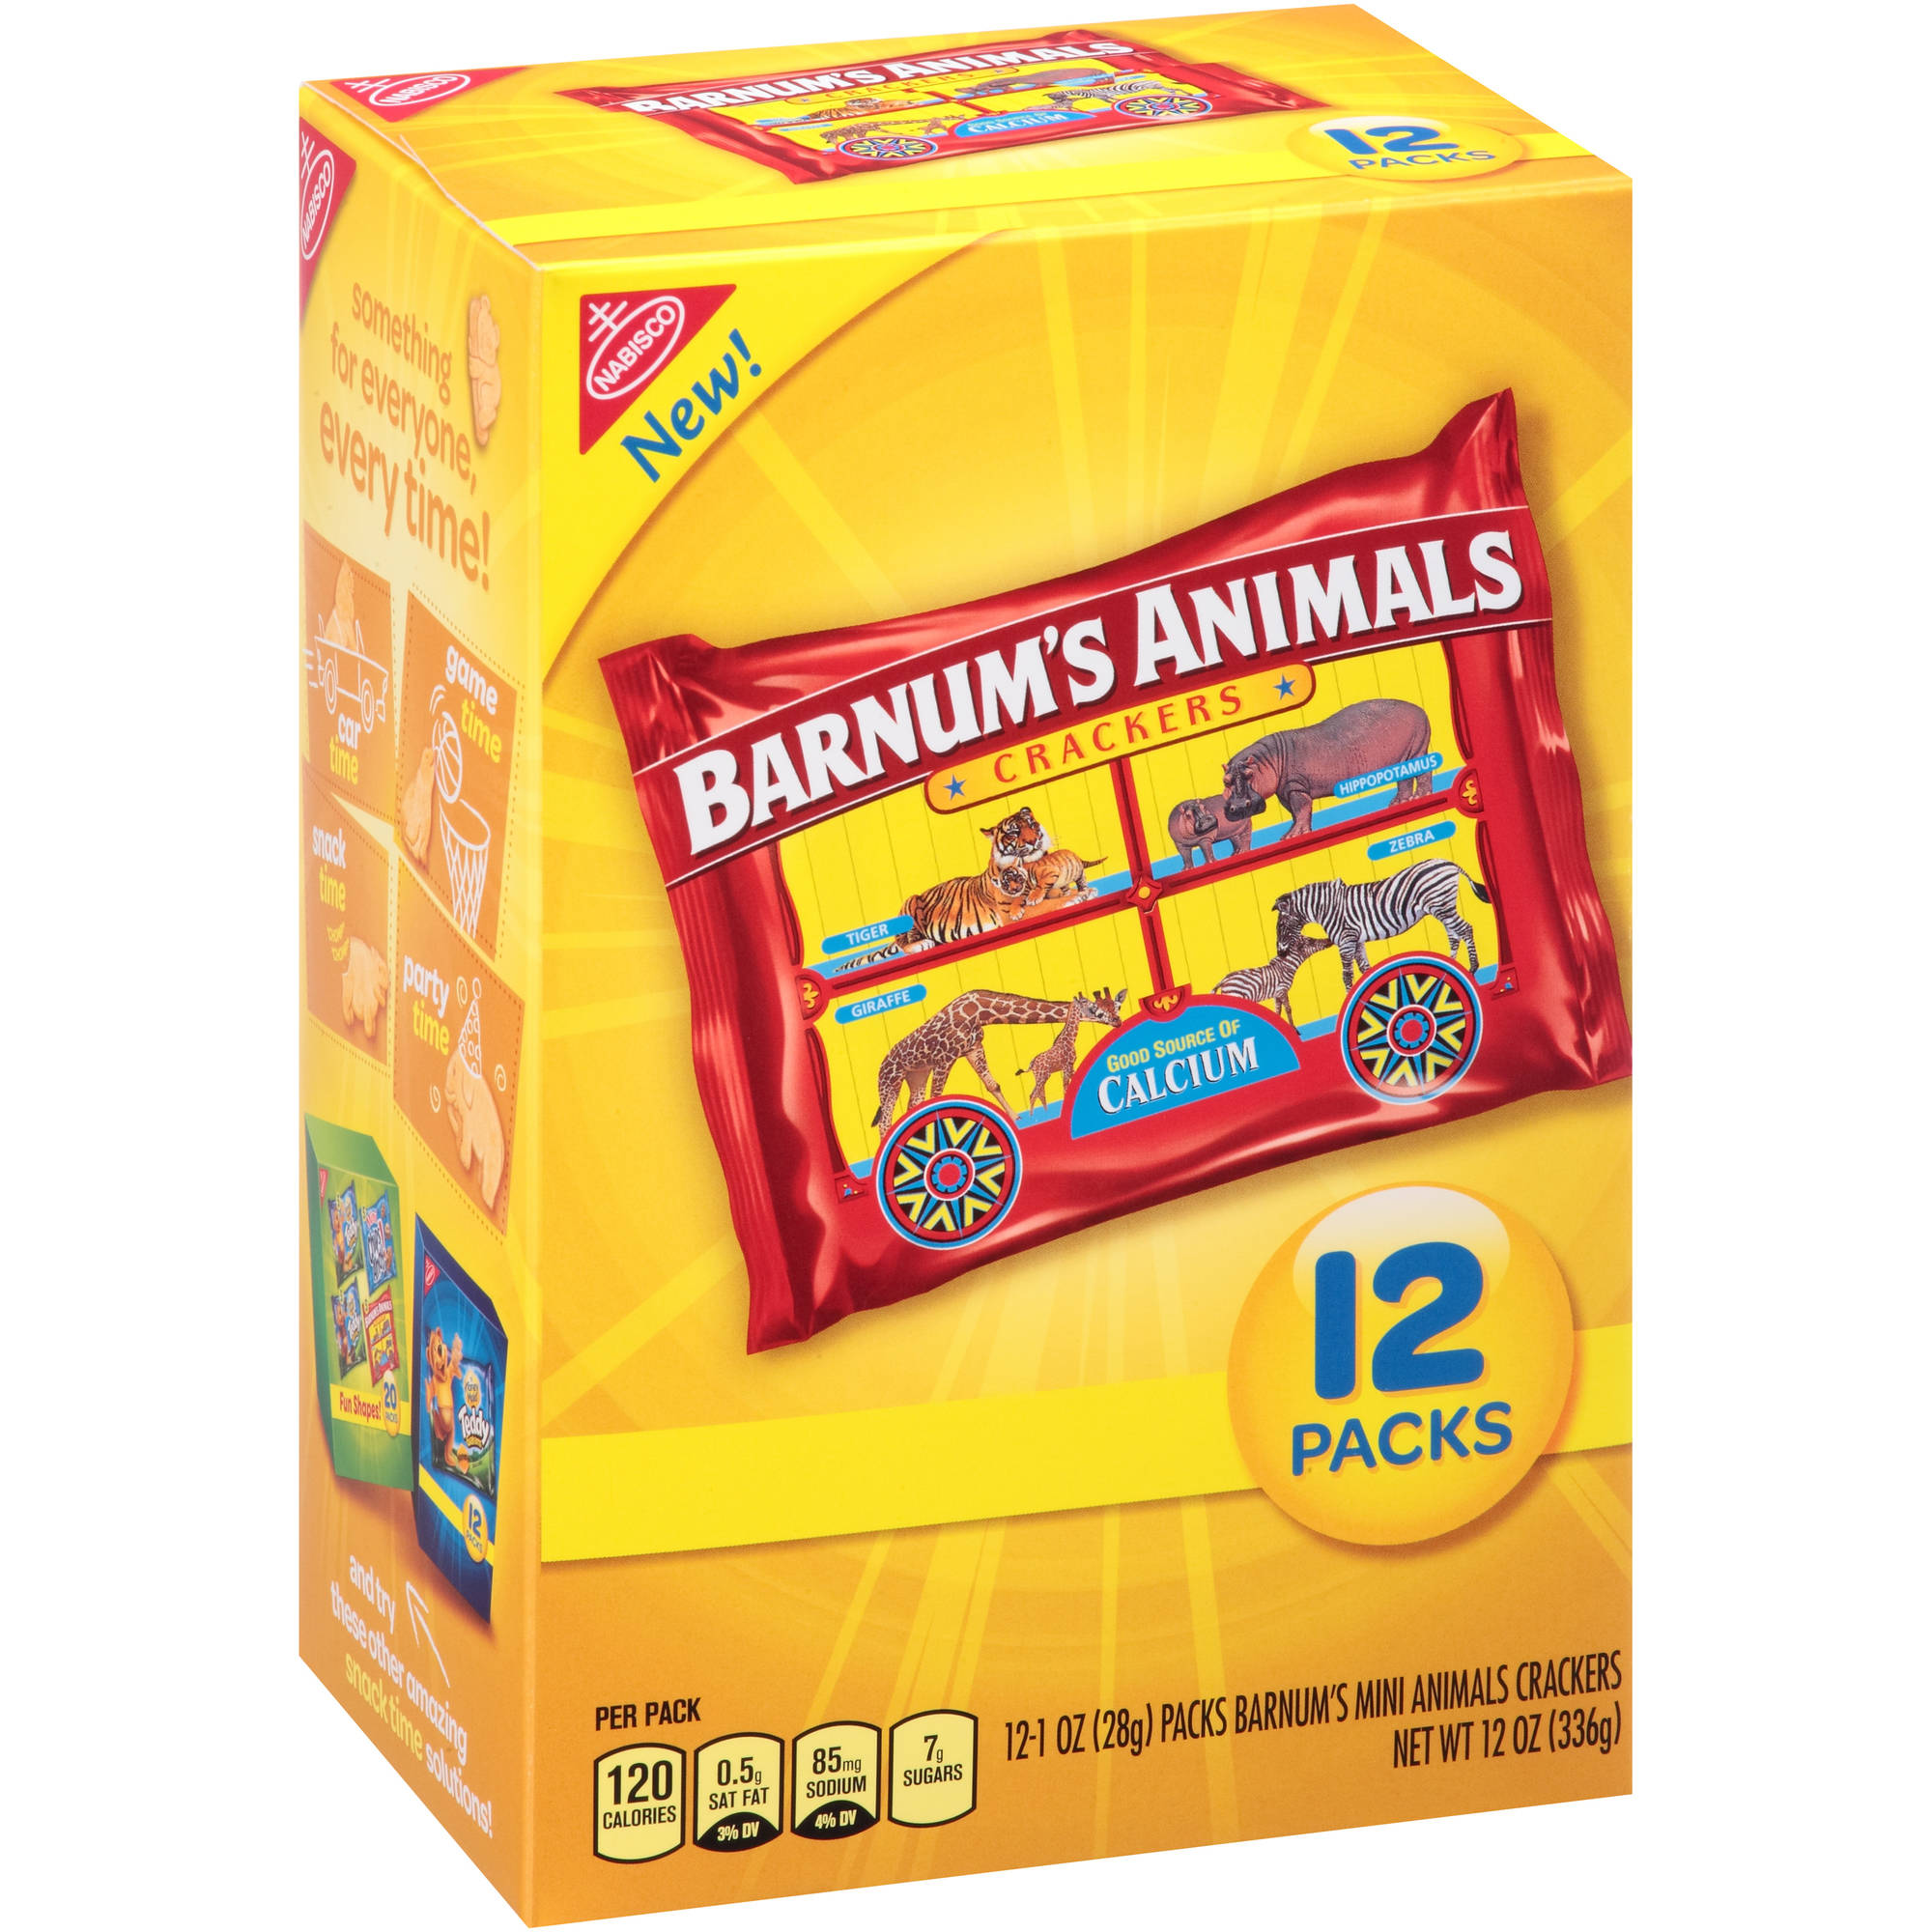 Nabisco Barnum's Animals Crackers, 1 oz, 12 count